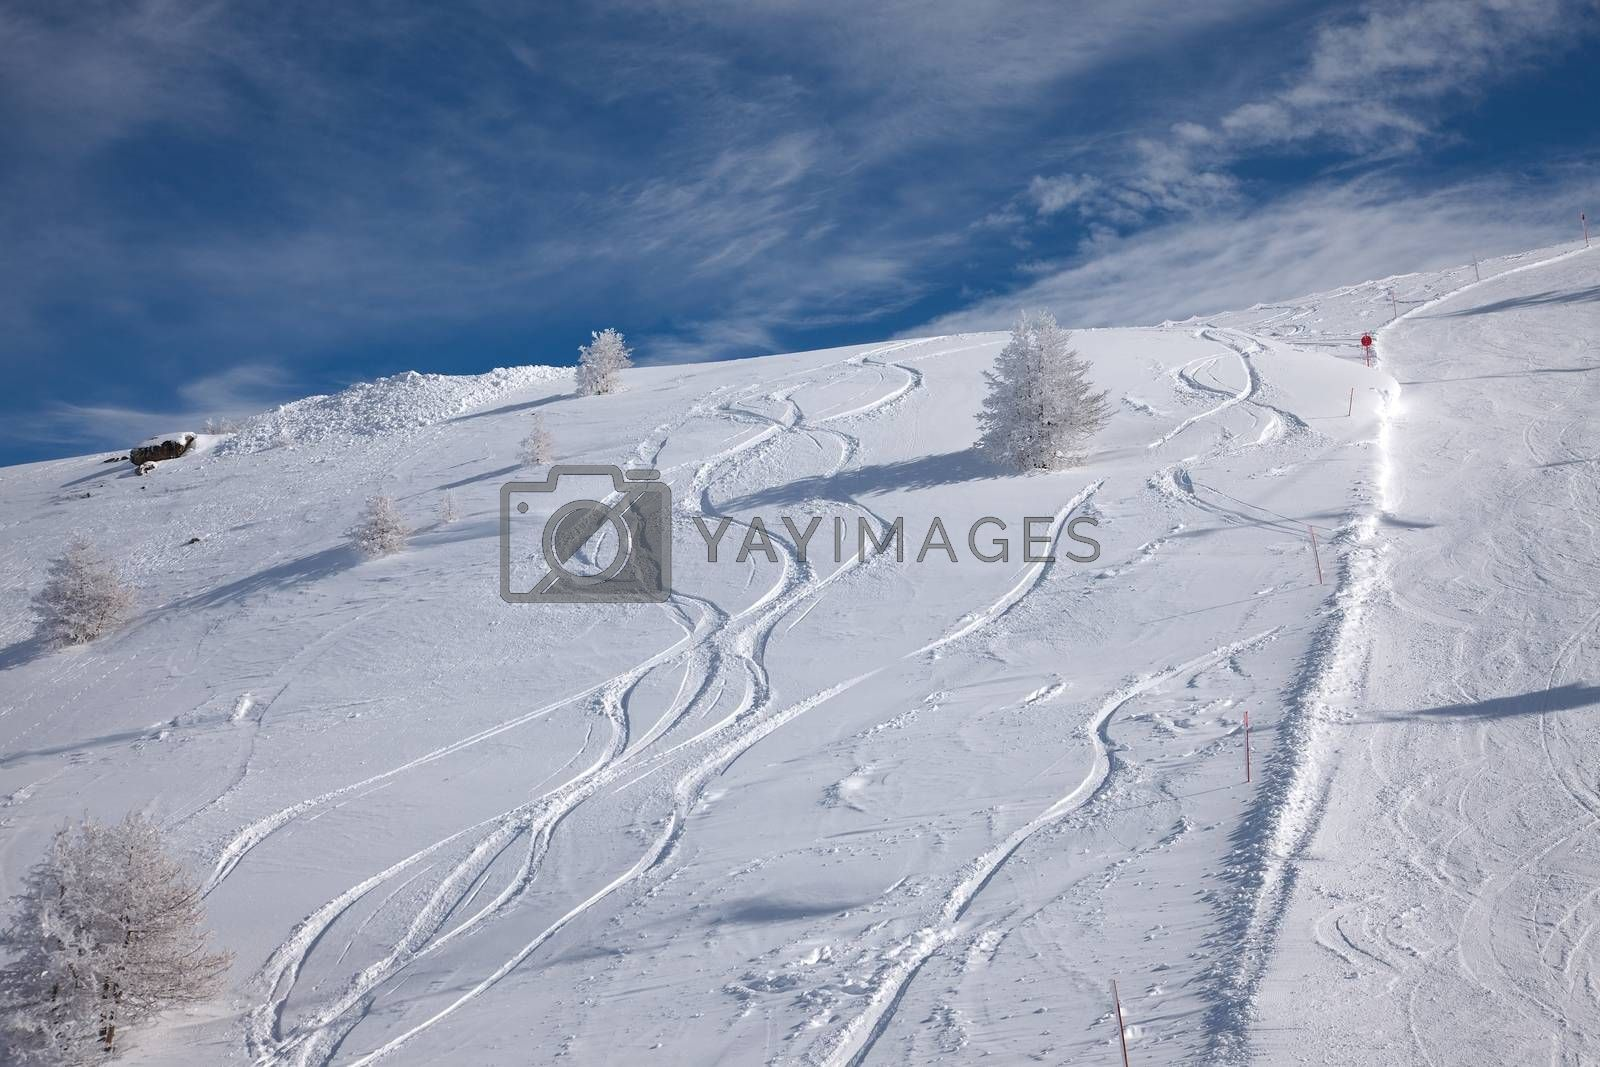 Snowboarders curves in the snow